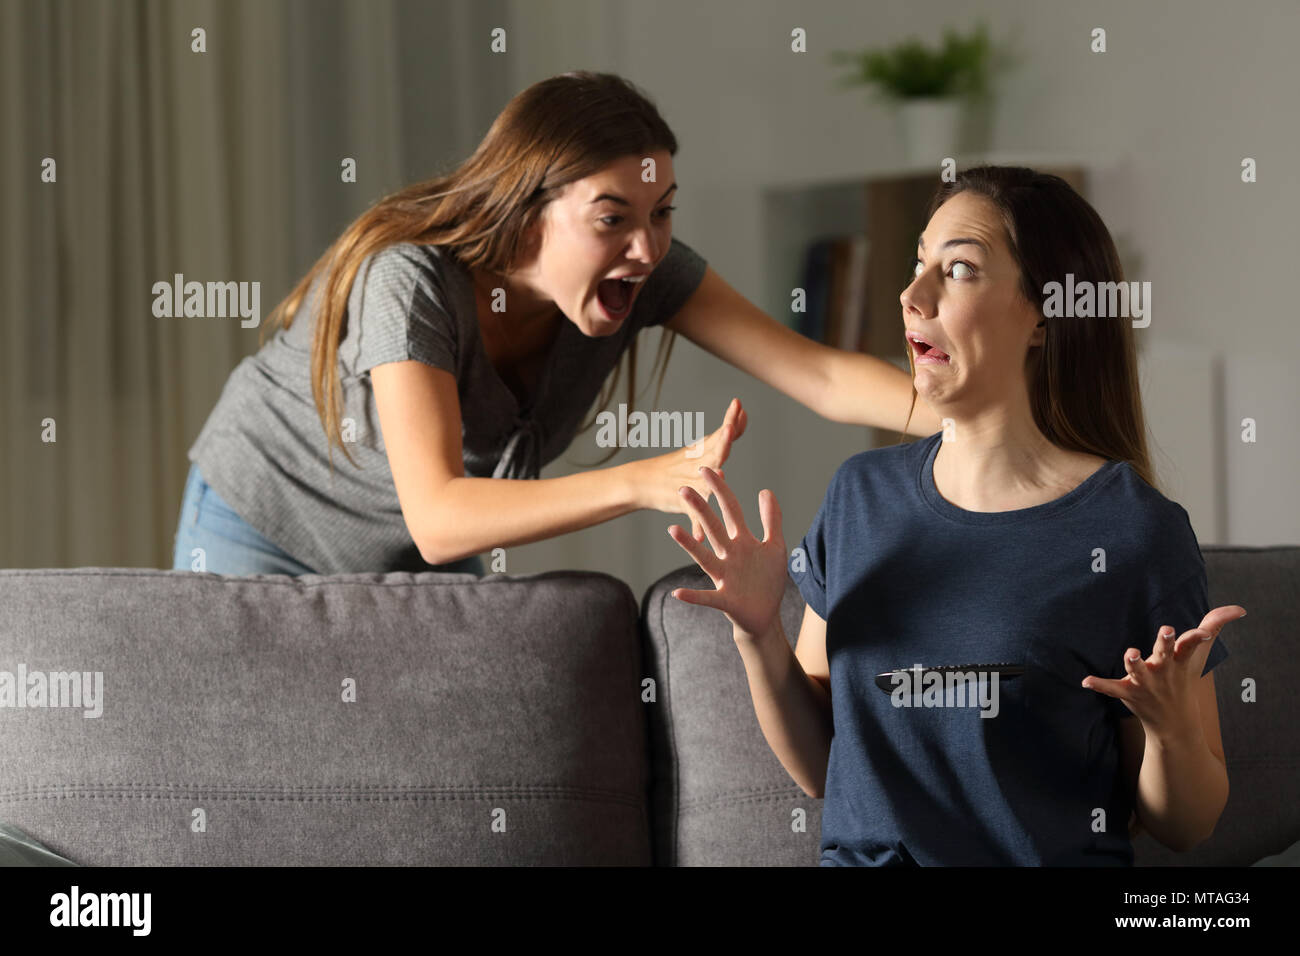 Woman giving a fright to a friend sitting on a couch in the living room at home - Stock Image